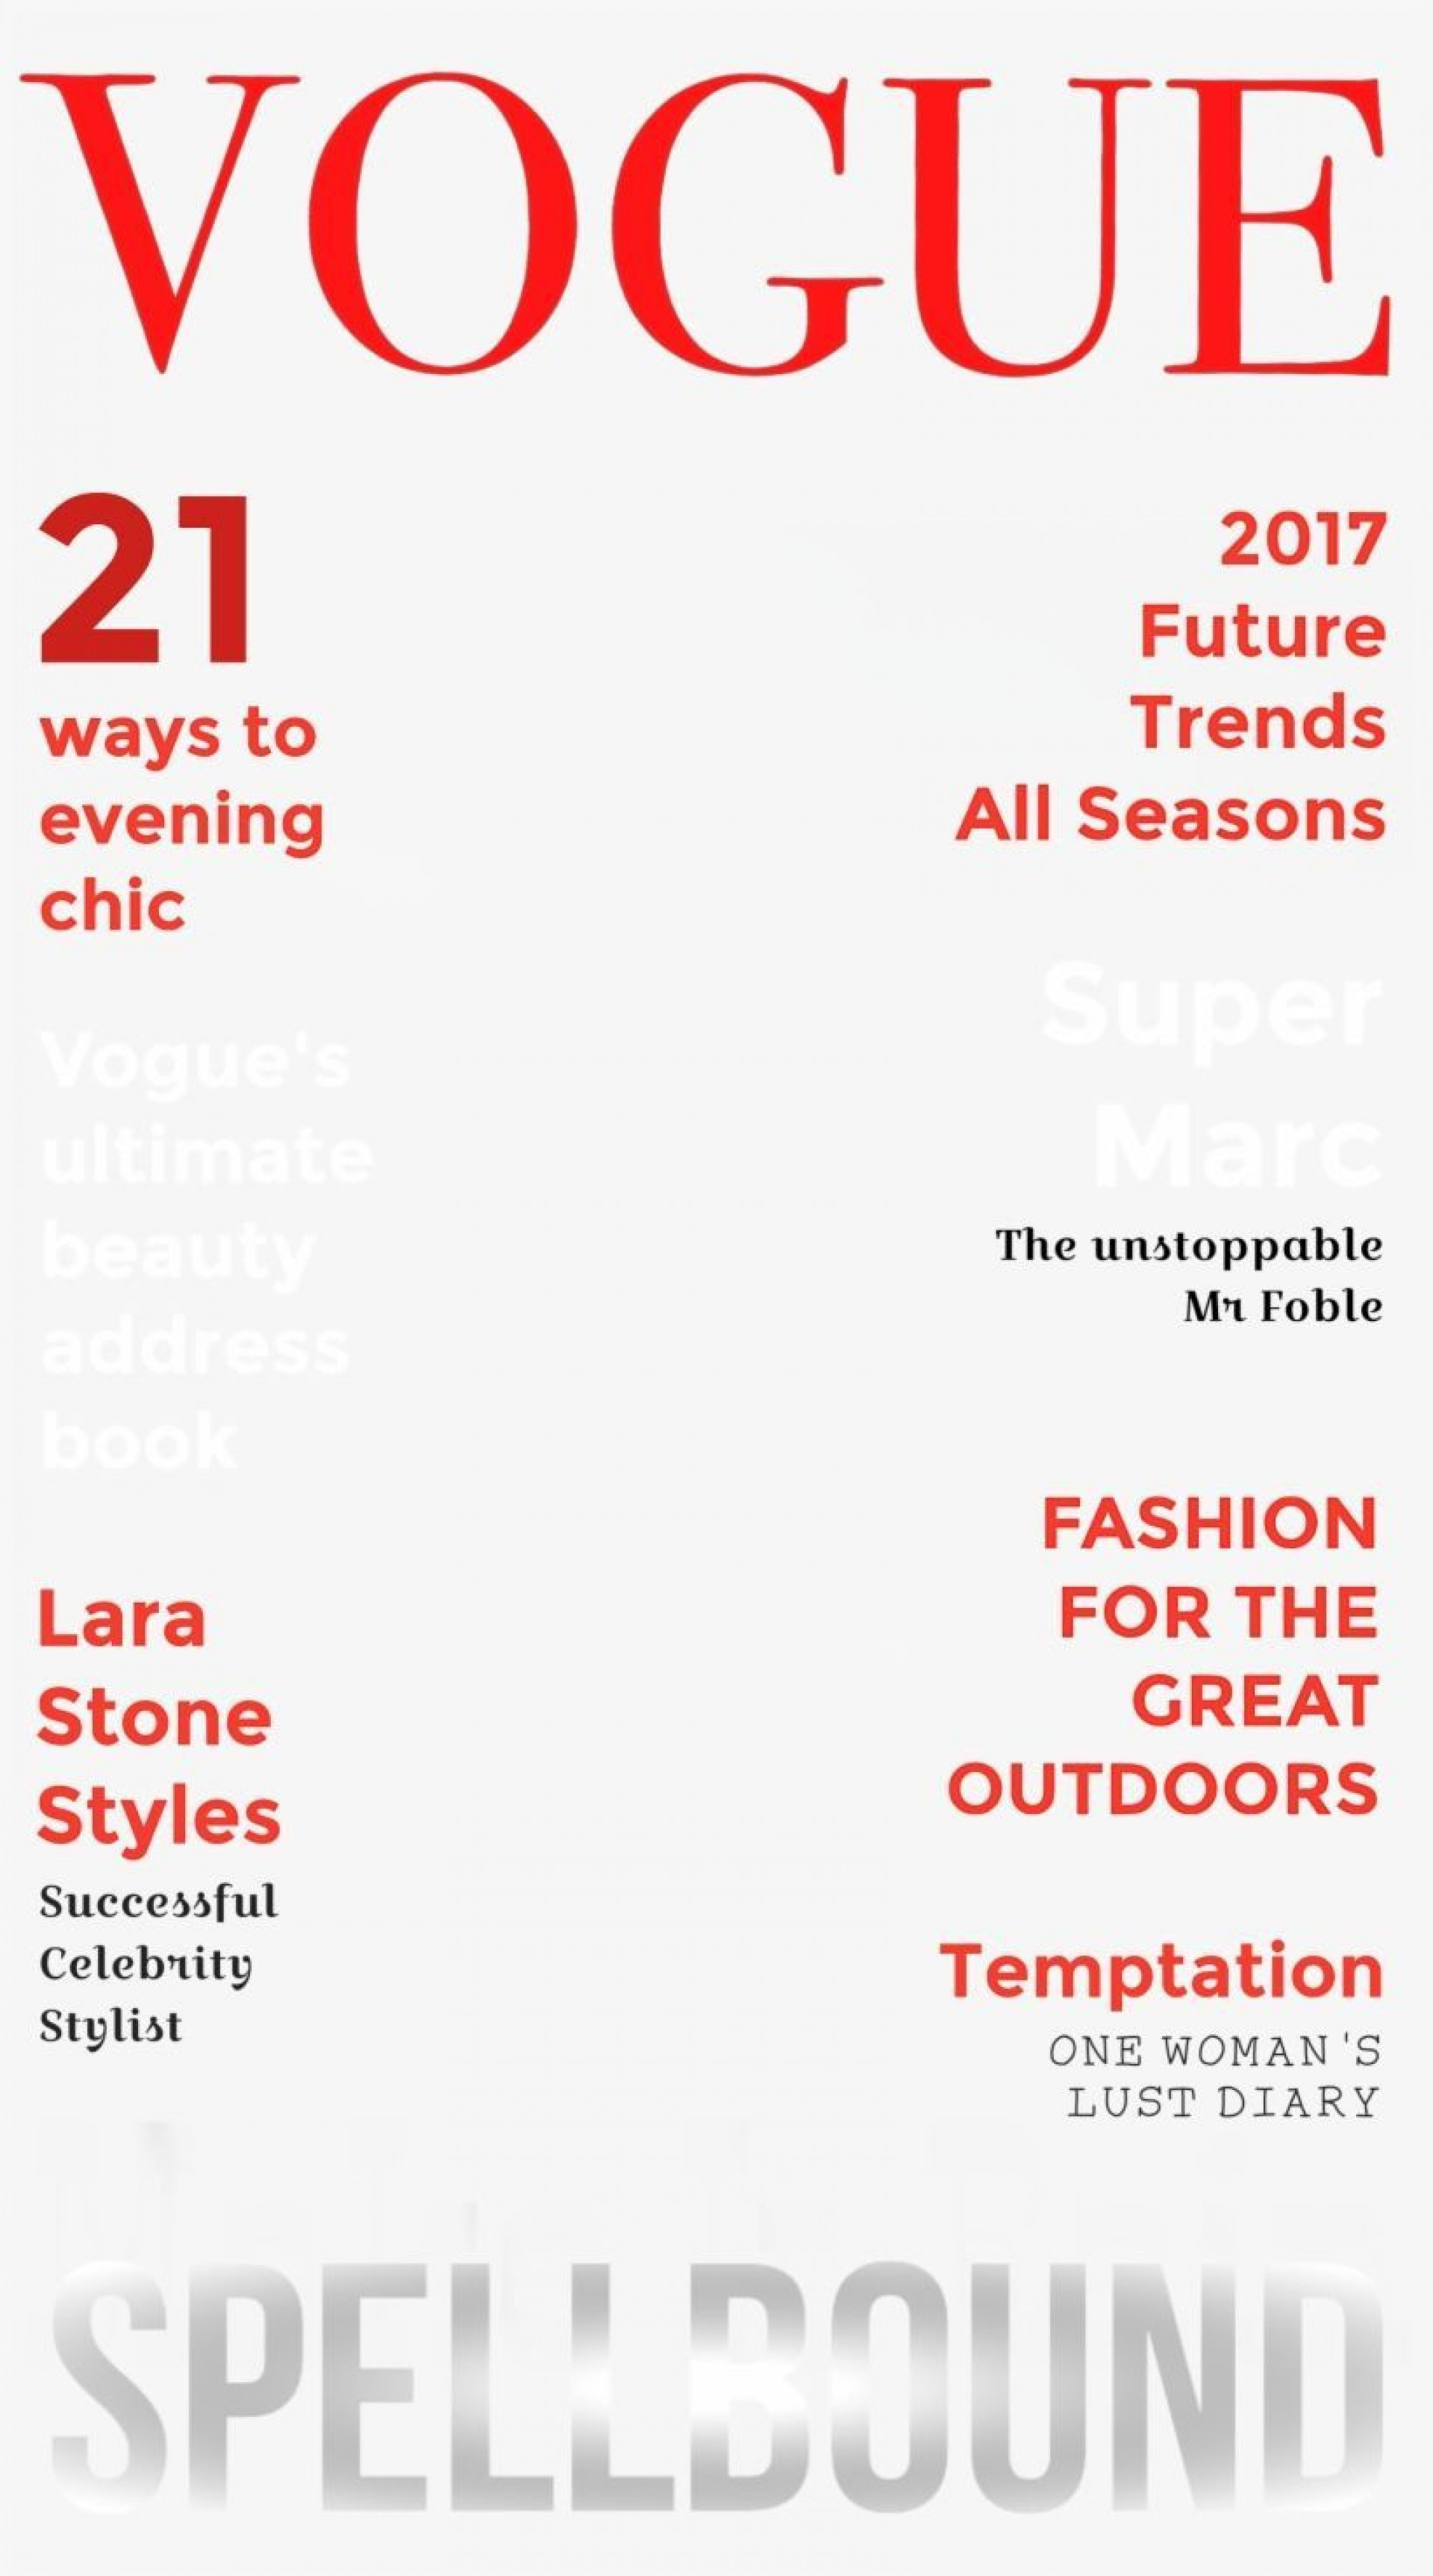 000 Archaicawful Photoshop Fashion Magazine Cover Template Free Sample 1920